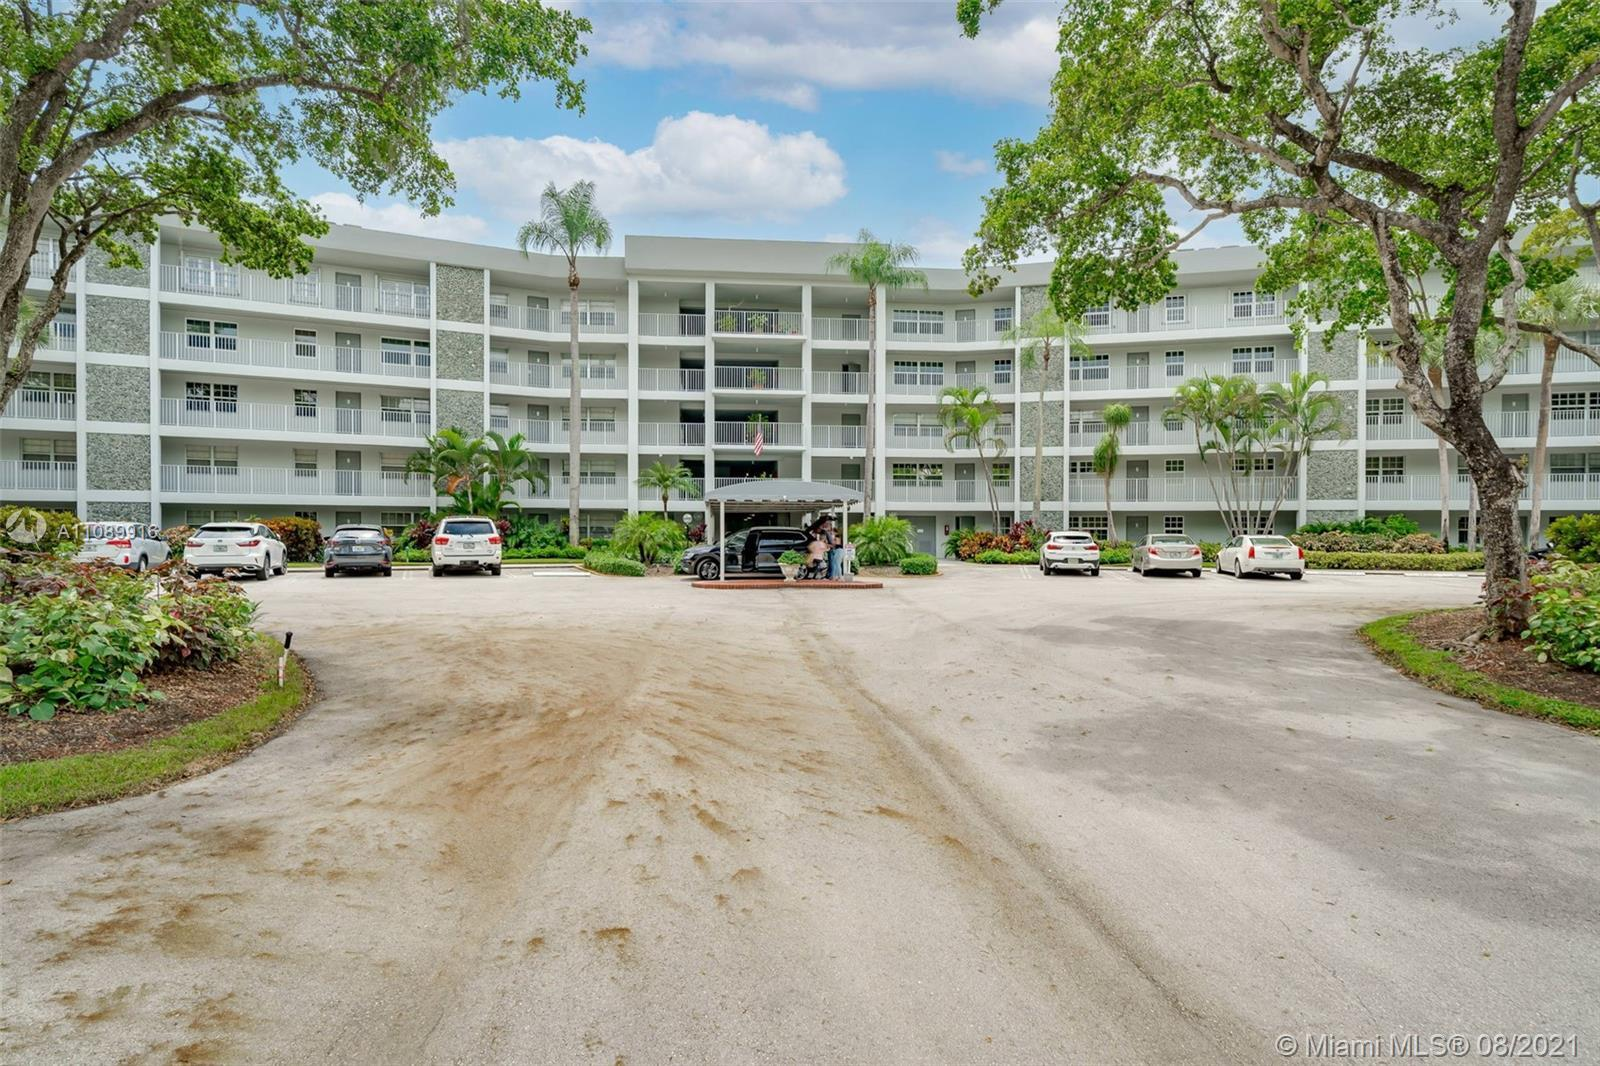 Beautiful Light, Bright, 3 BR 2.5 bath, ground floor condo in Palm Aire Country Club, no equity buy